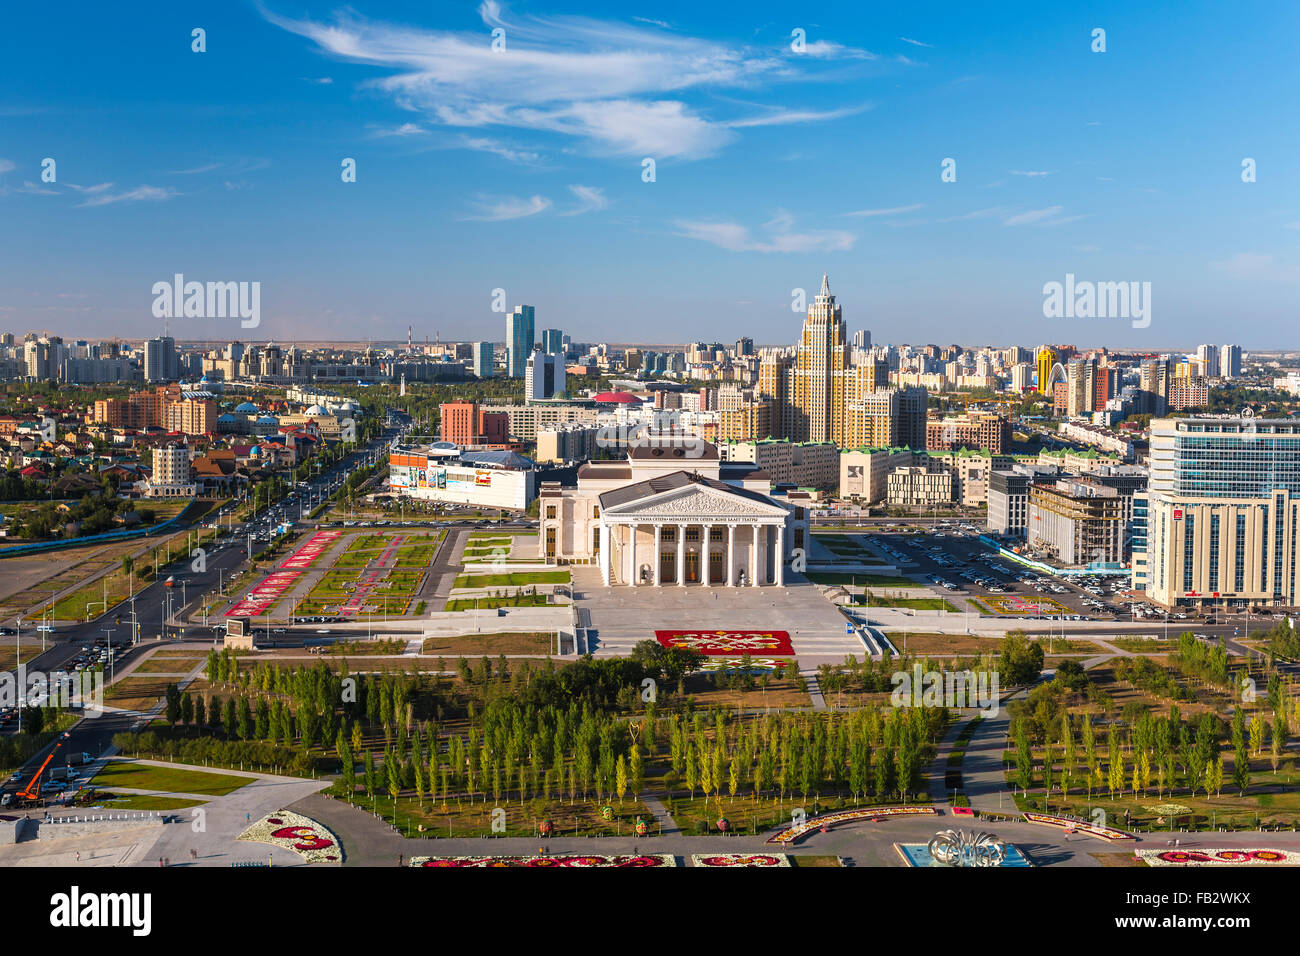 Central Asia, Kazakhstan, Astana, elevated view over the city center and Opera Theater building - Stock Image